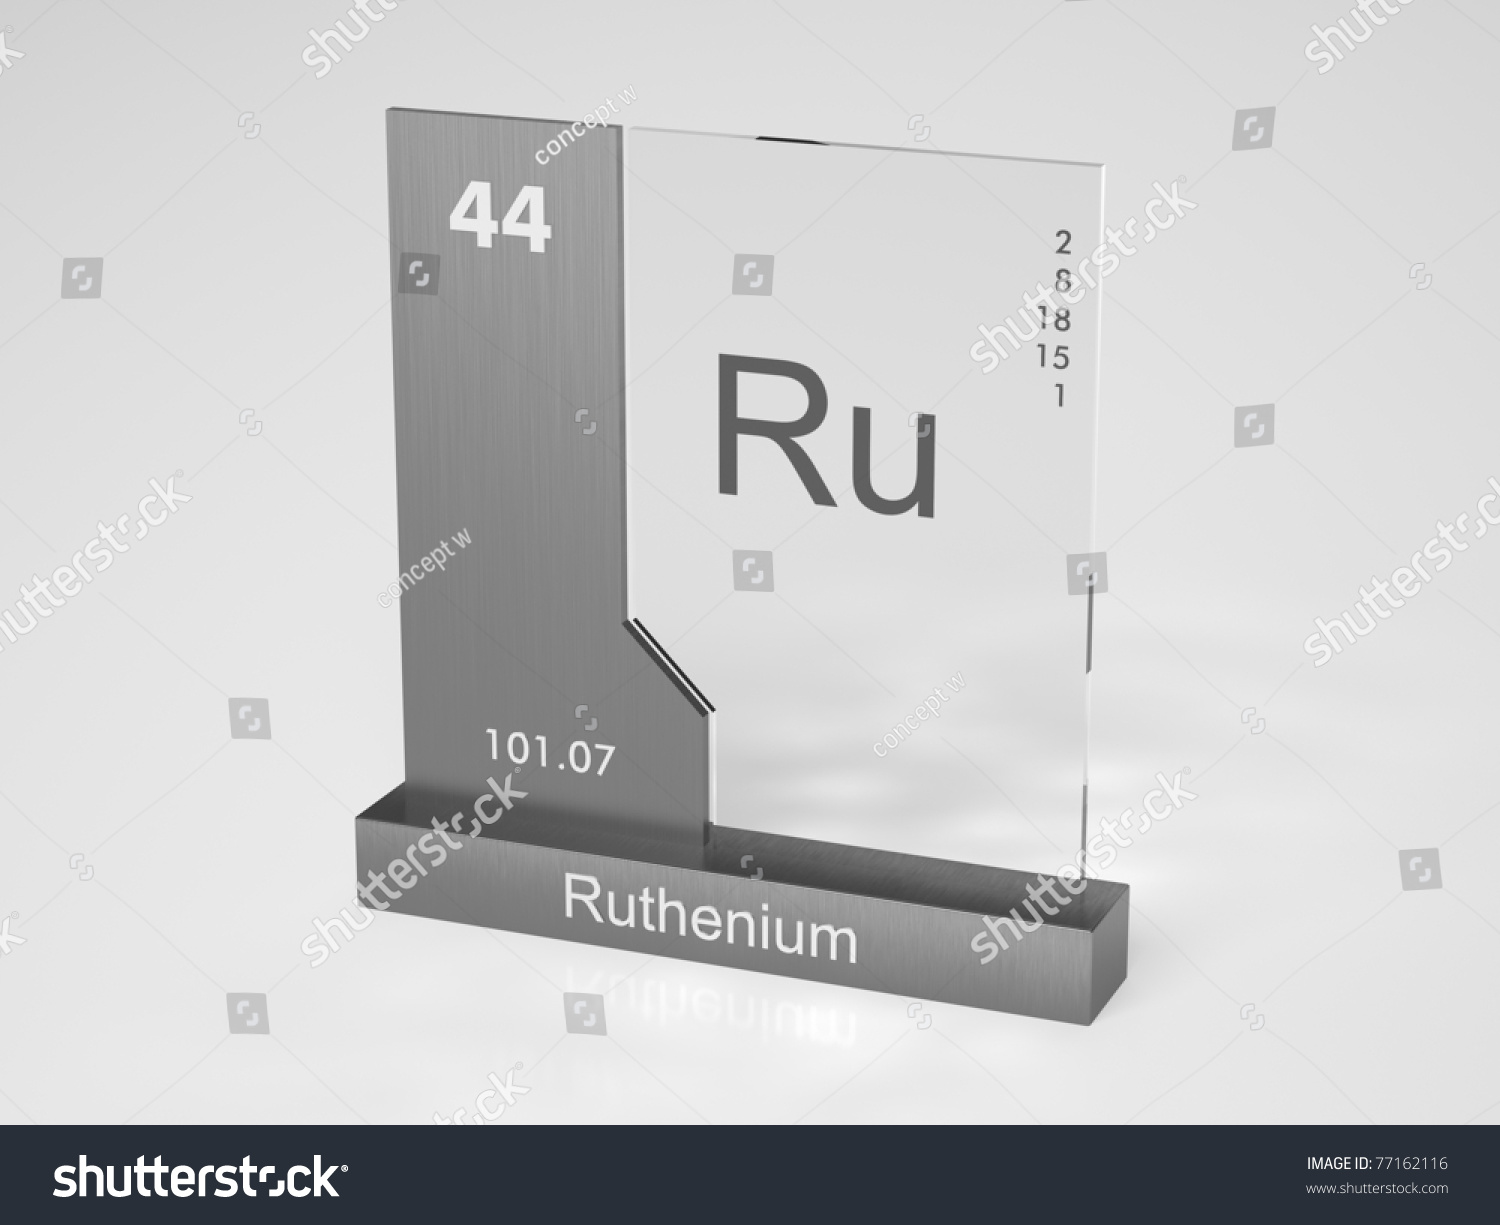 Ruthenium symbol ru chemical element periodic stock illustration ruthenium symbol ru chemical element of the periodic table gamestrikefo Choice Image